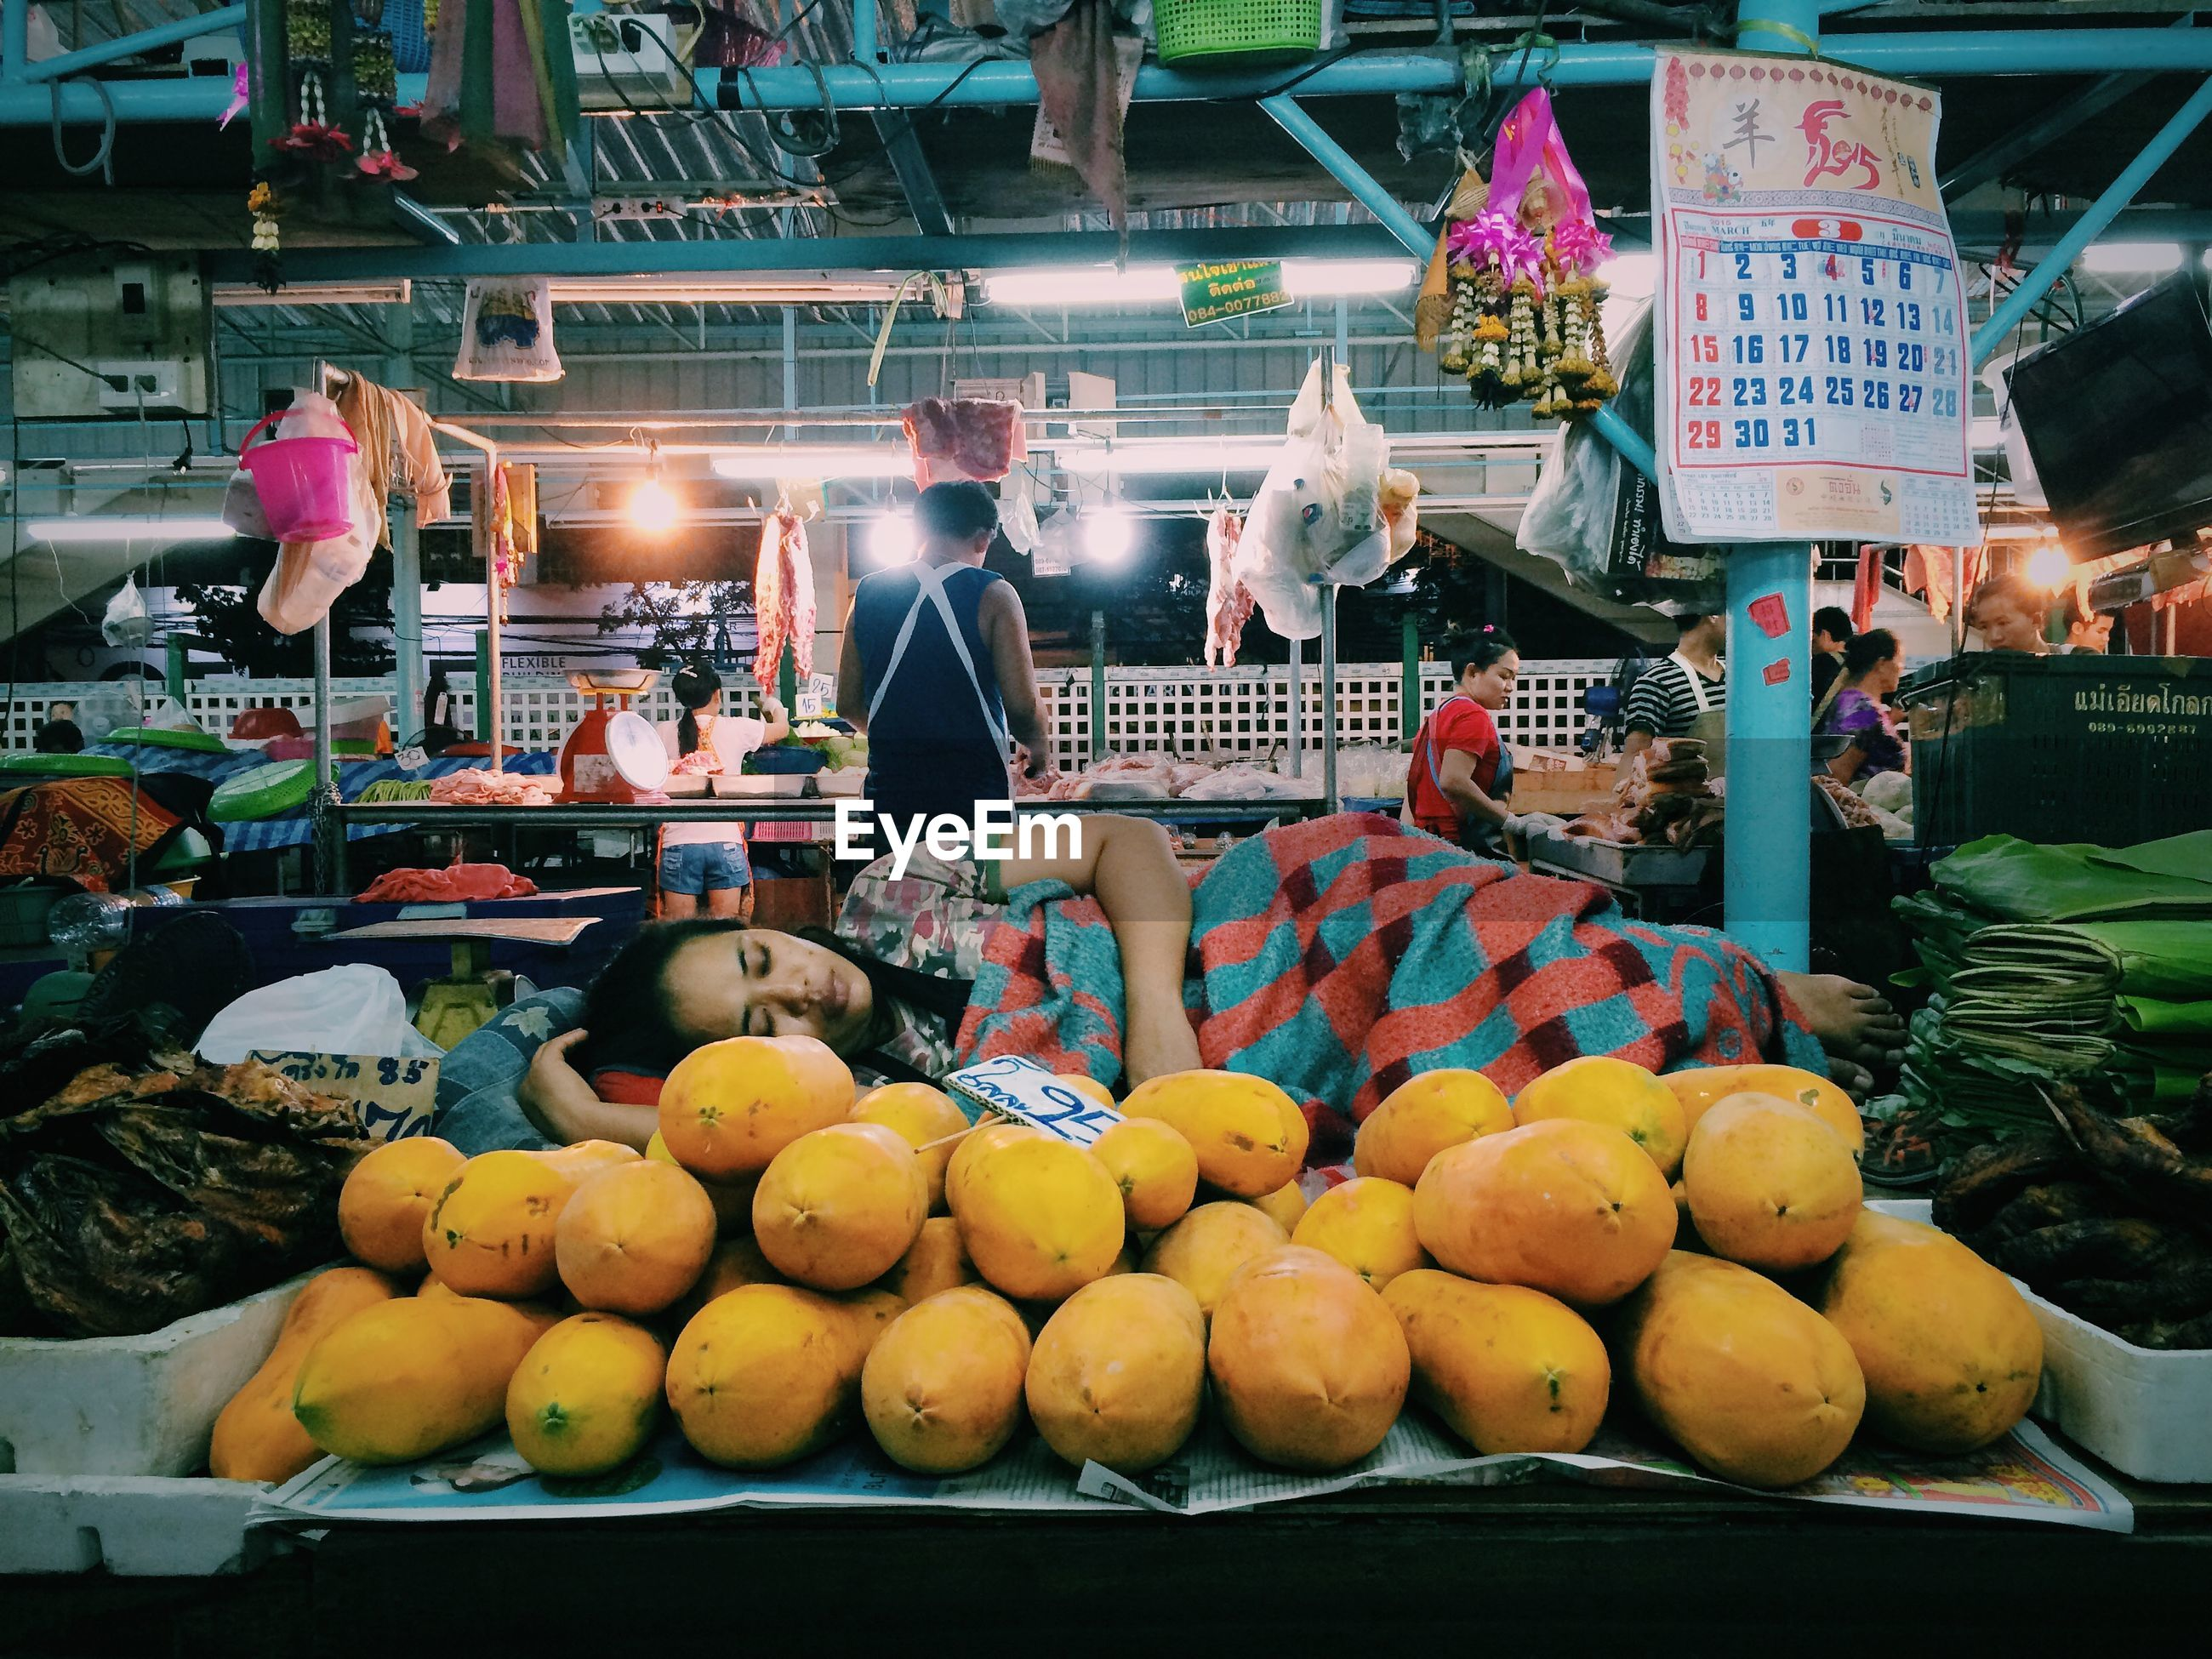 VIEW OF MARKET STALL FOR SALE